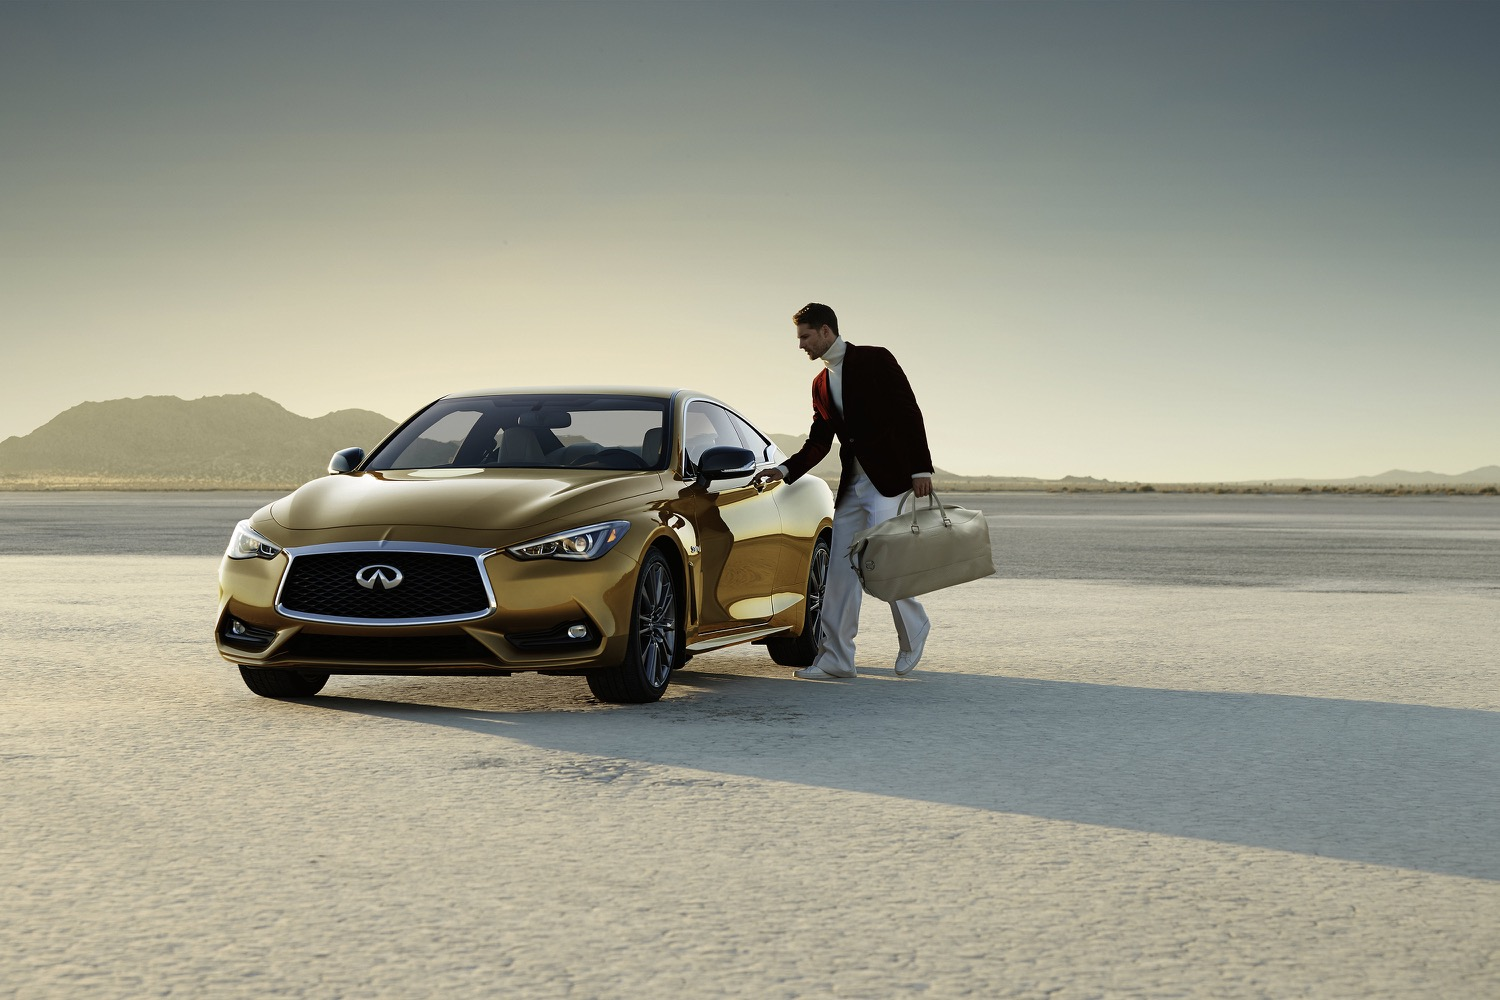 Infiniti's Q60 coupe gets a spot in the Neiman Marcus Christmas Book